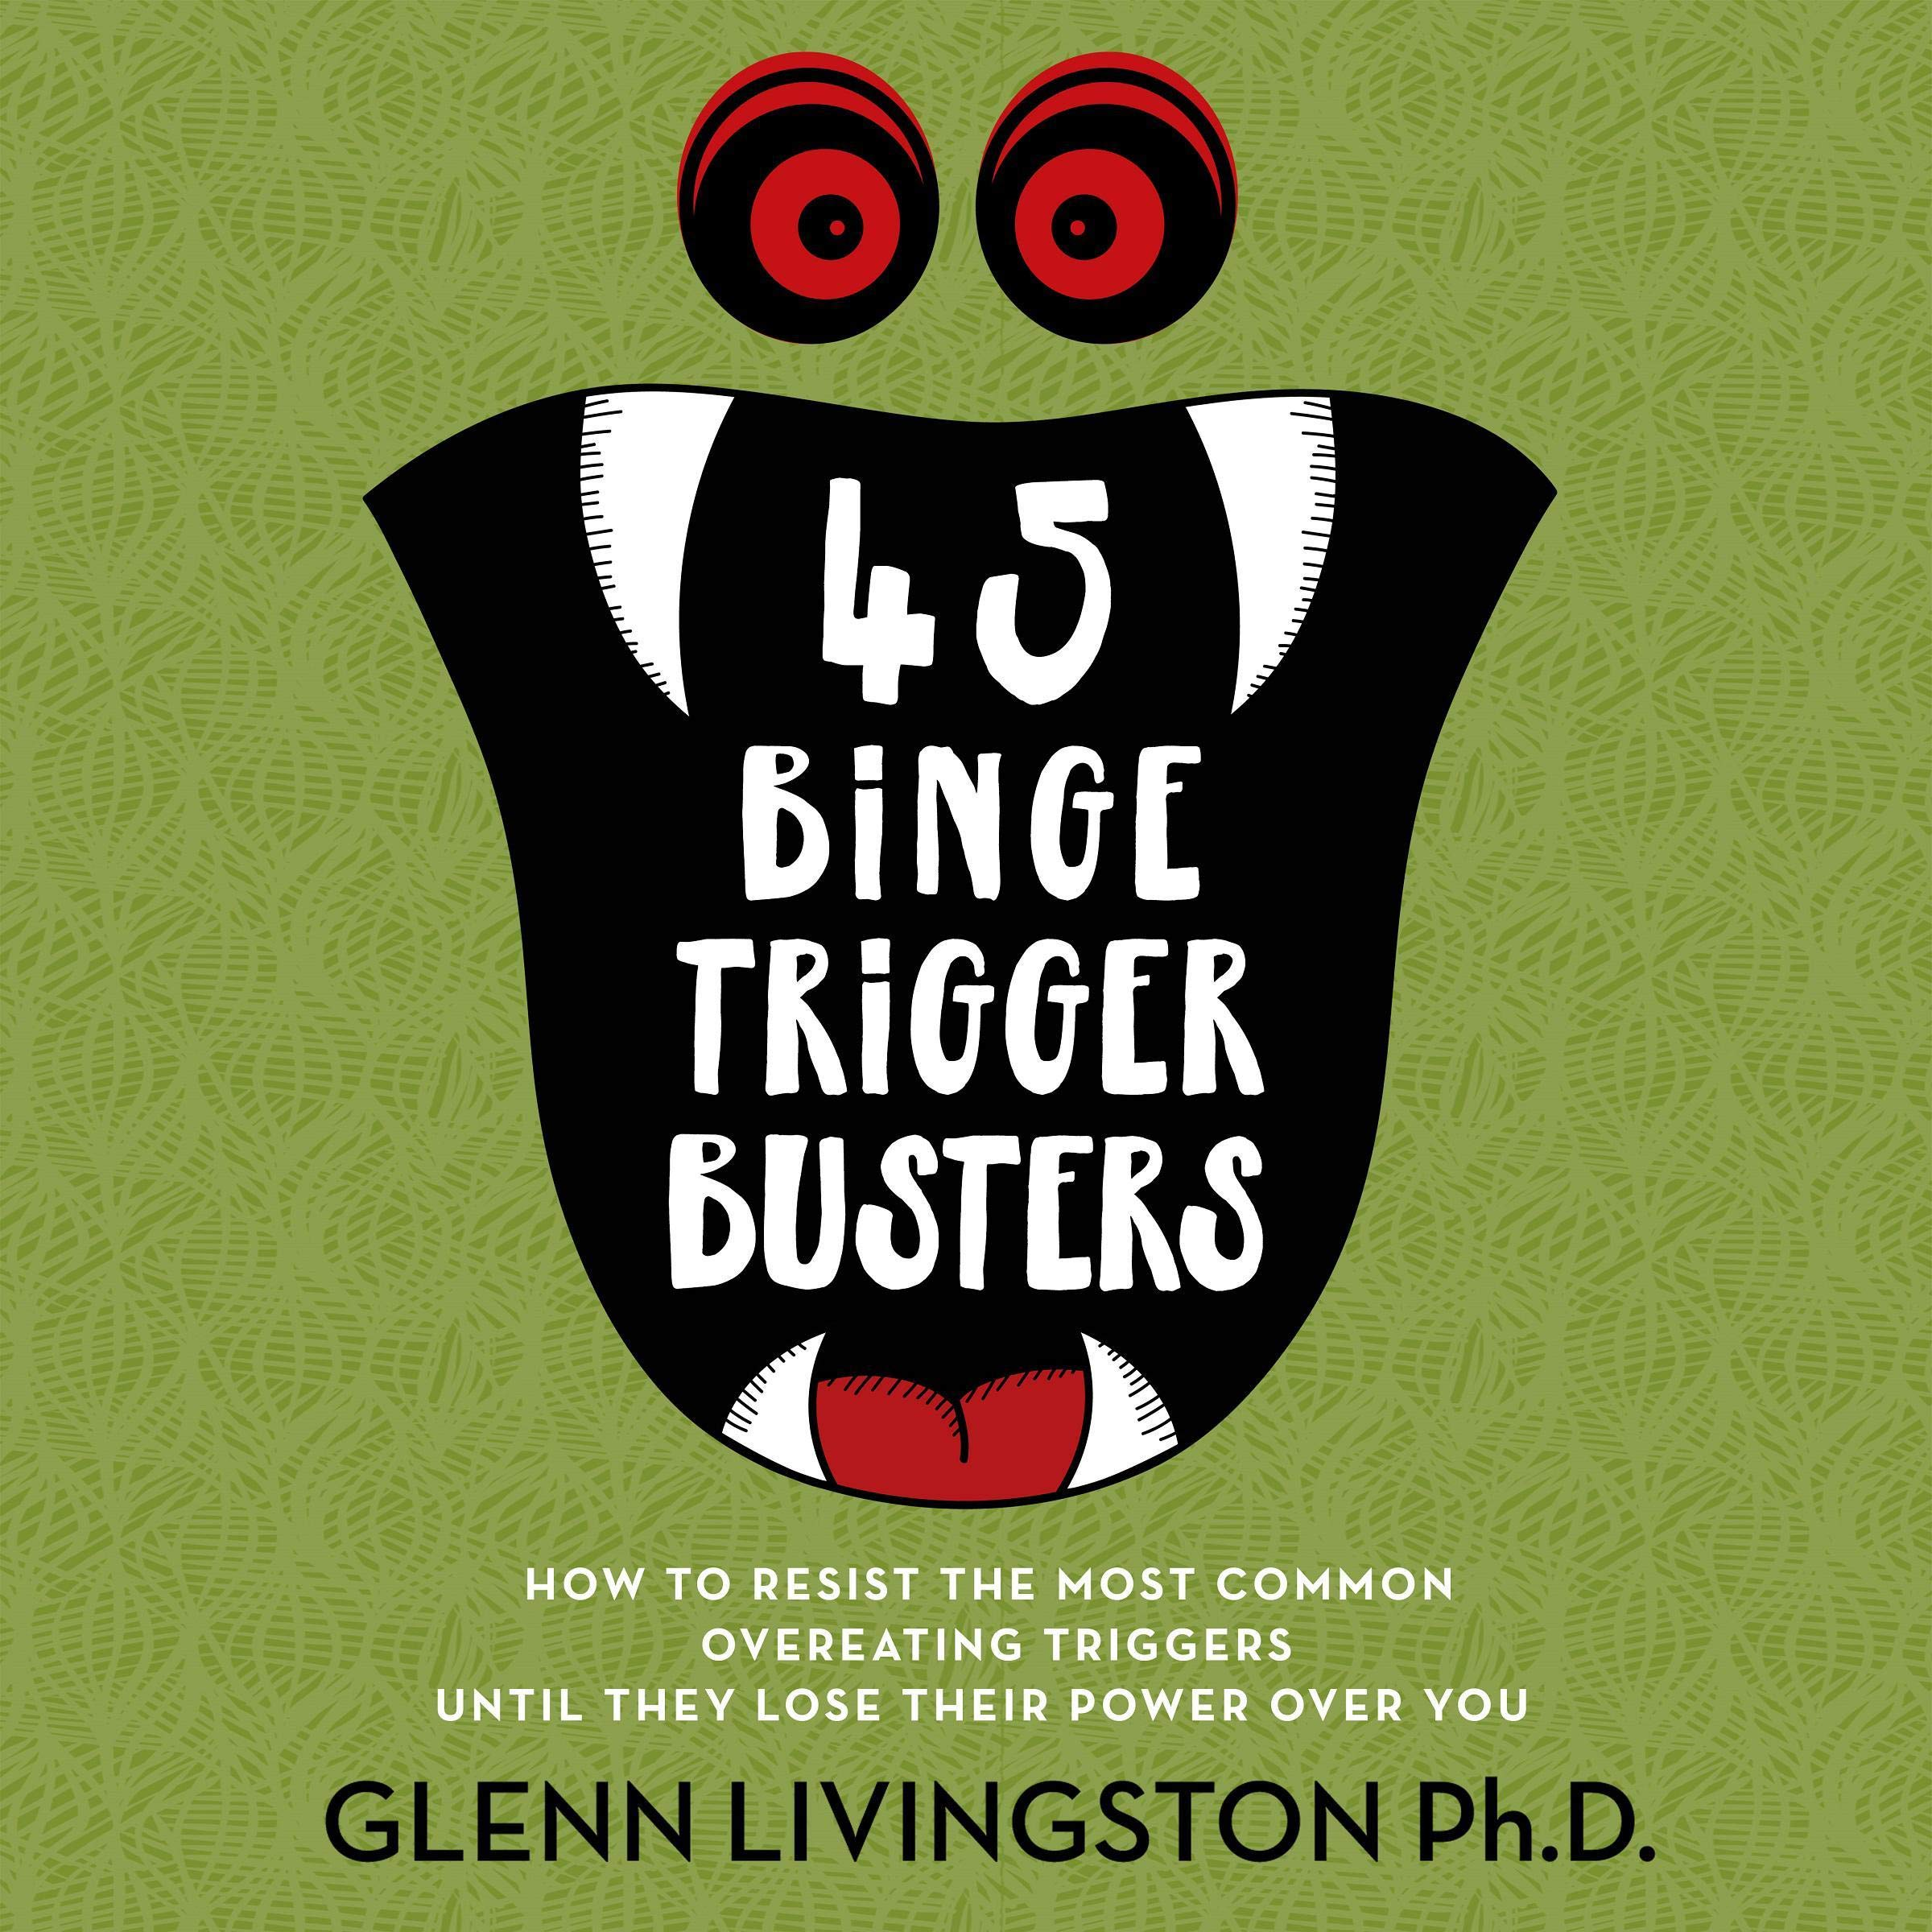 45 Binge Trigger Busters  How To Resist The Most Common Overeating Triggers Until They Lose Their Power Over You